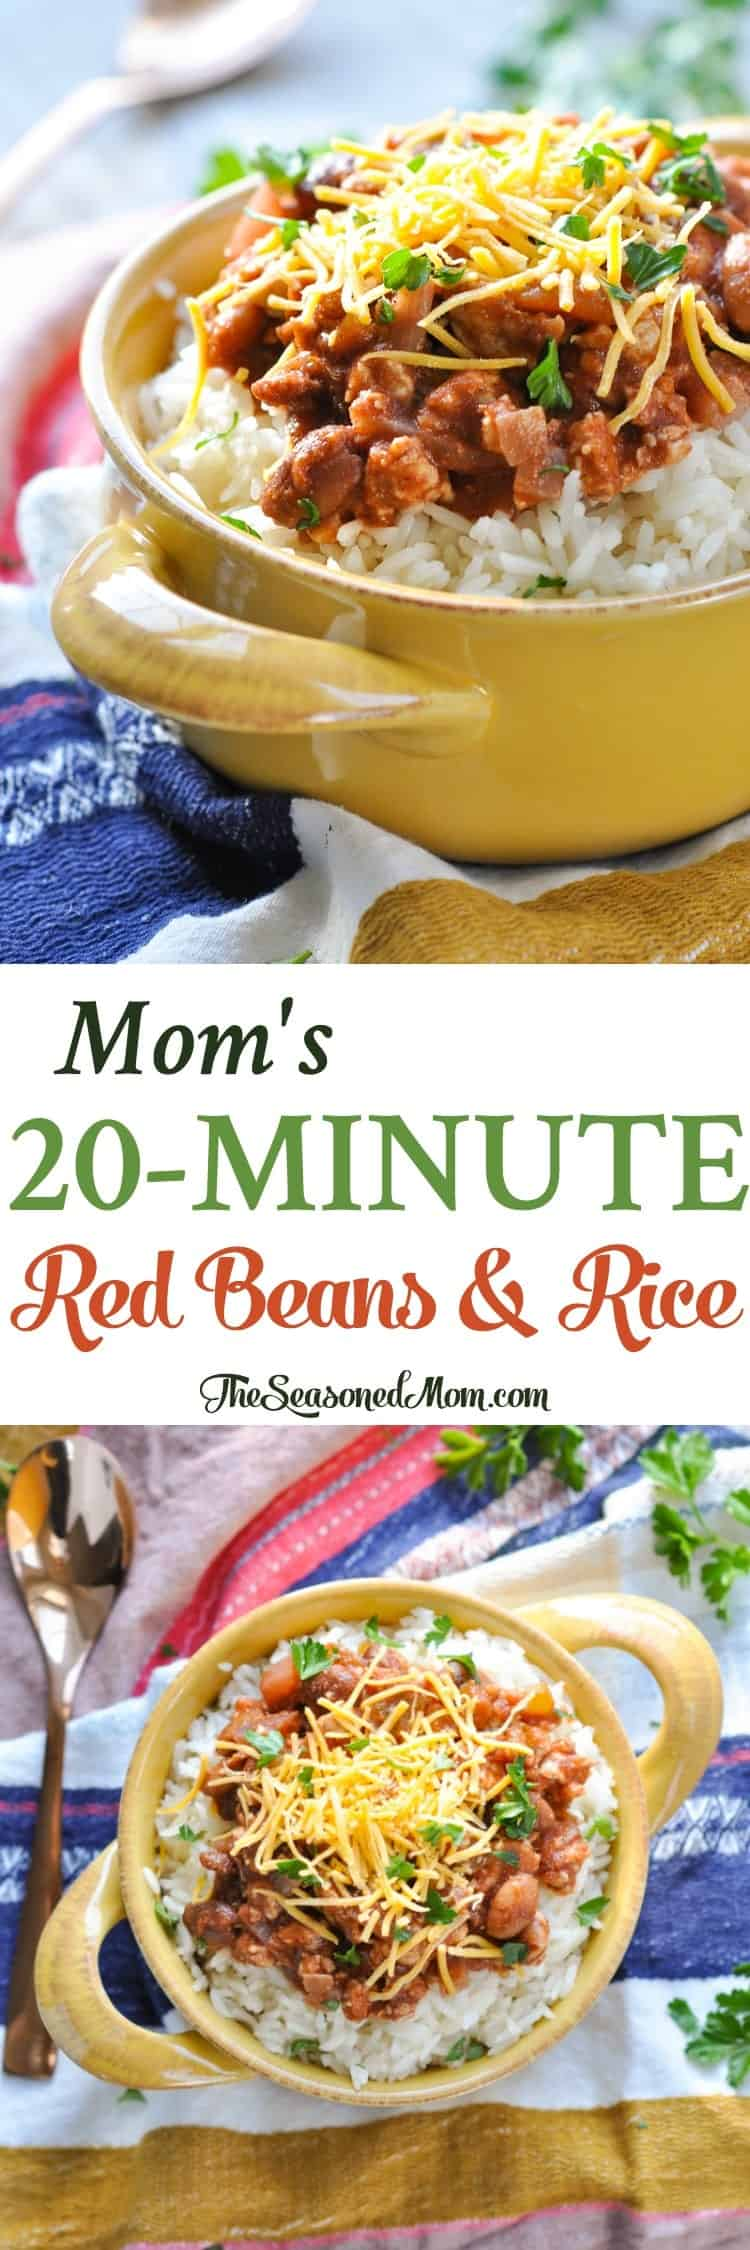 Mom S 20 Minute Red Beans And Rice Easy Dinner Recipes Dinner Ideas